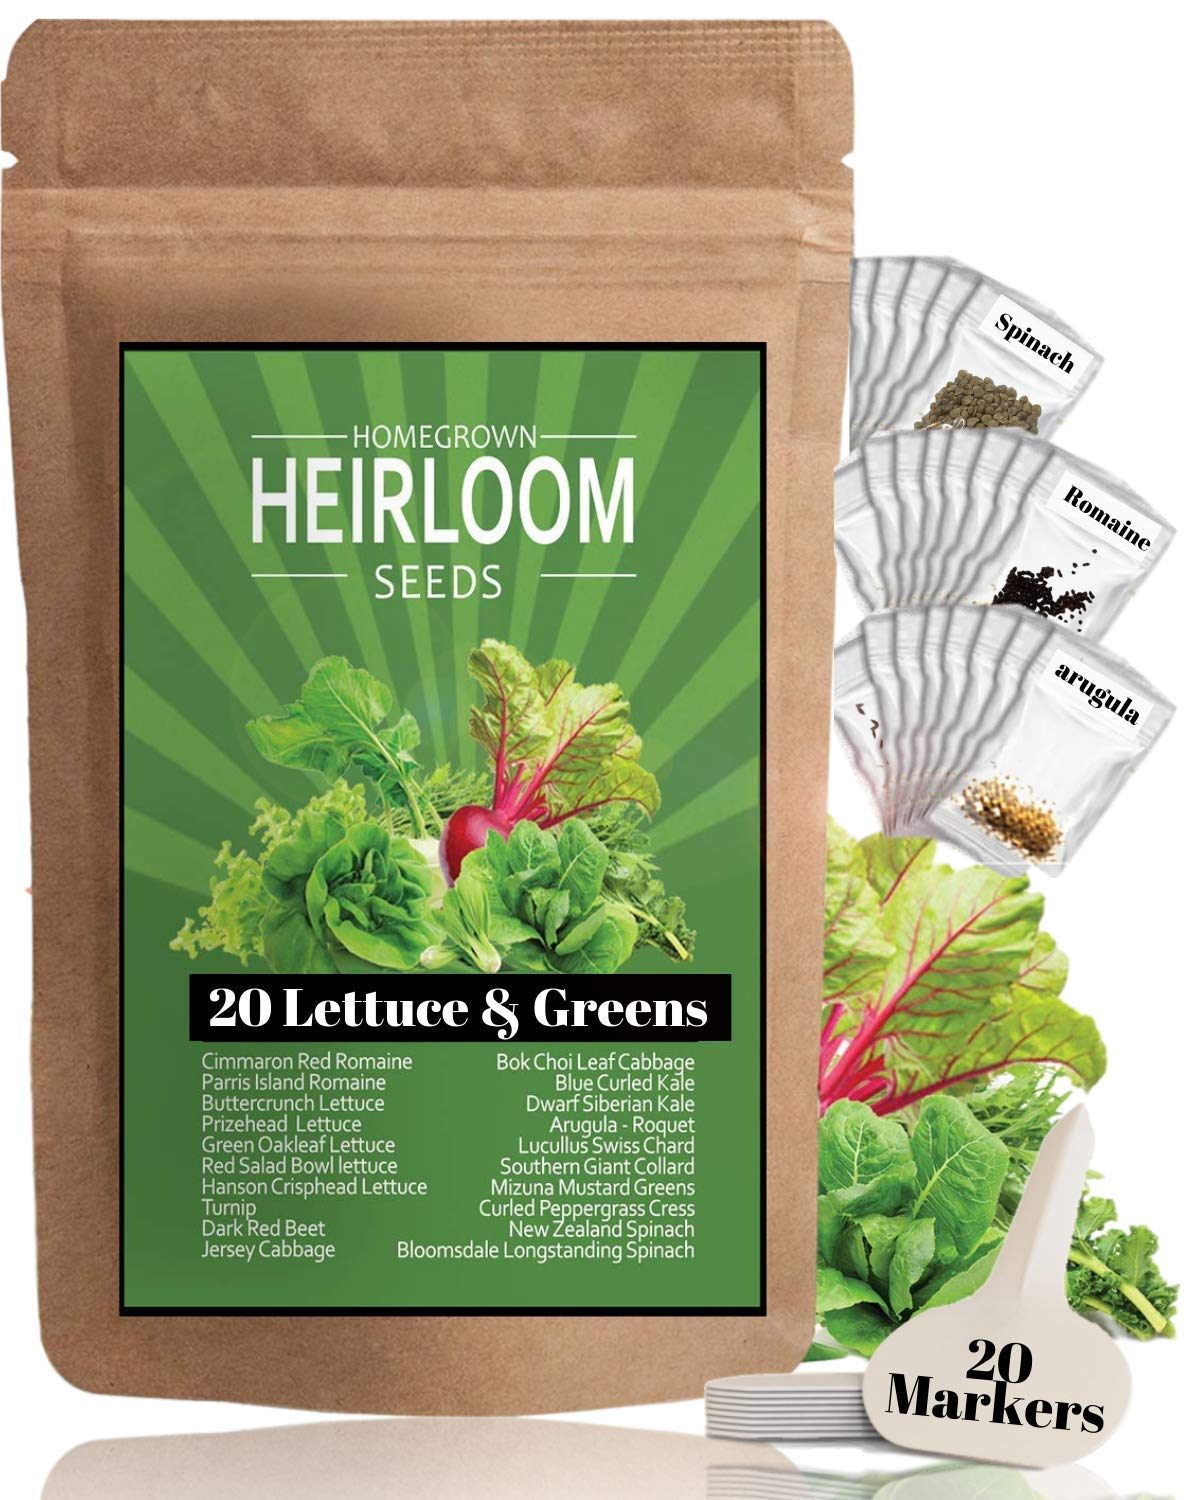 Lettuce and Leafy Greens Heirloom Seeds [20 Varieties - 3000] Kale, Spinach, Butter, Oak, Romaine, Iceberg, Bibb, Arugula | Hydroponic Vegetable Garden | Non Gmo Microgreen Seeds For Planting